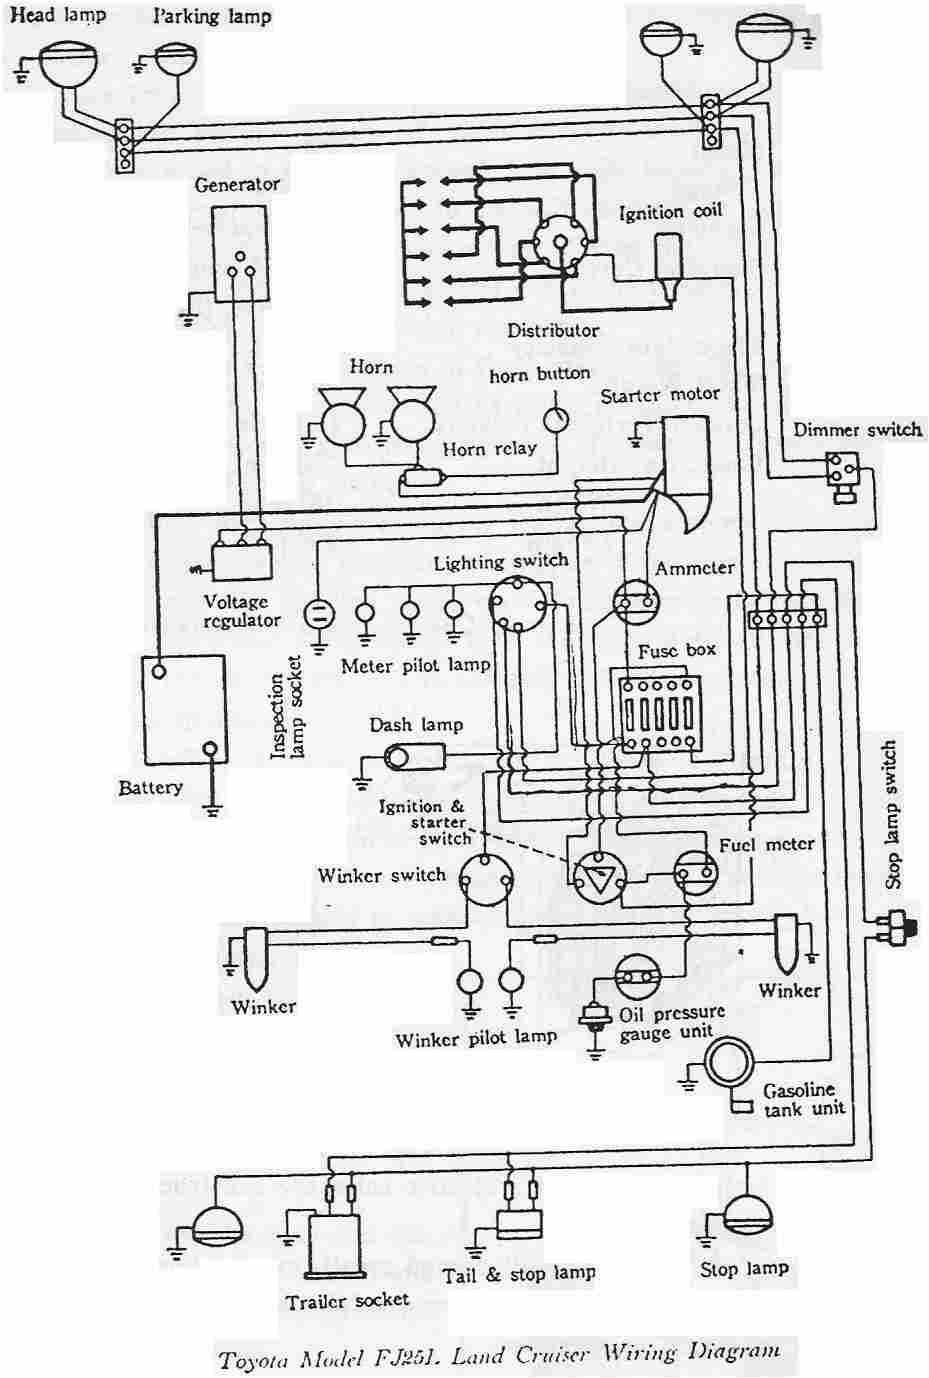 Toyota Land Cruiser Fj25 Electrical on 2000 toyota tundra fuse diagram